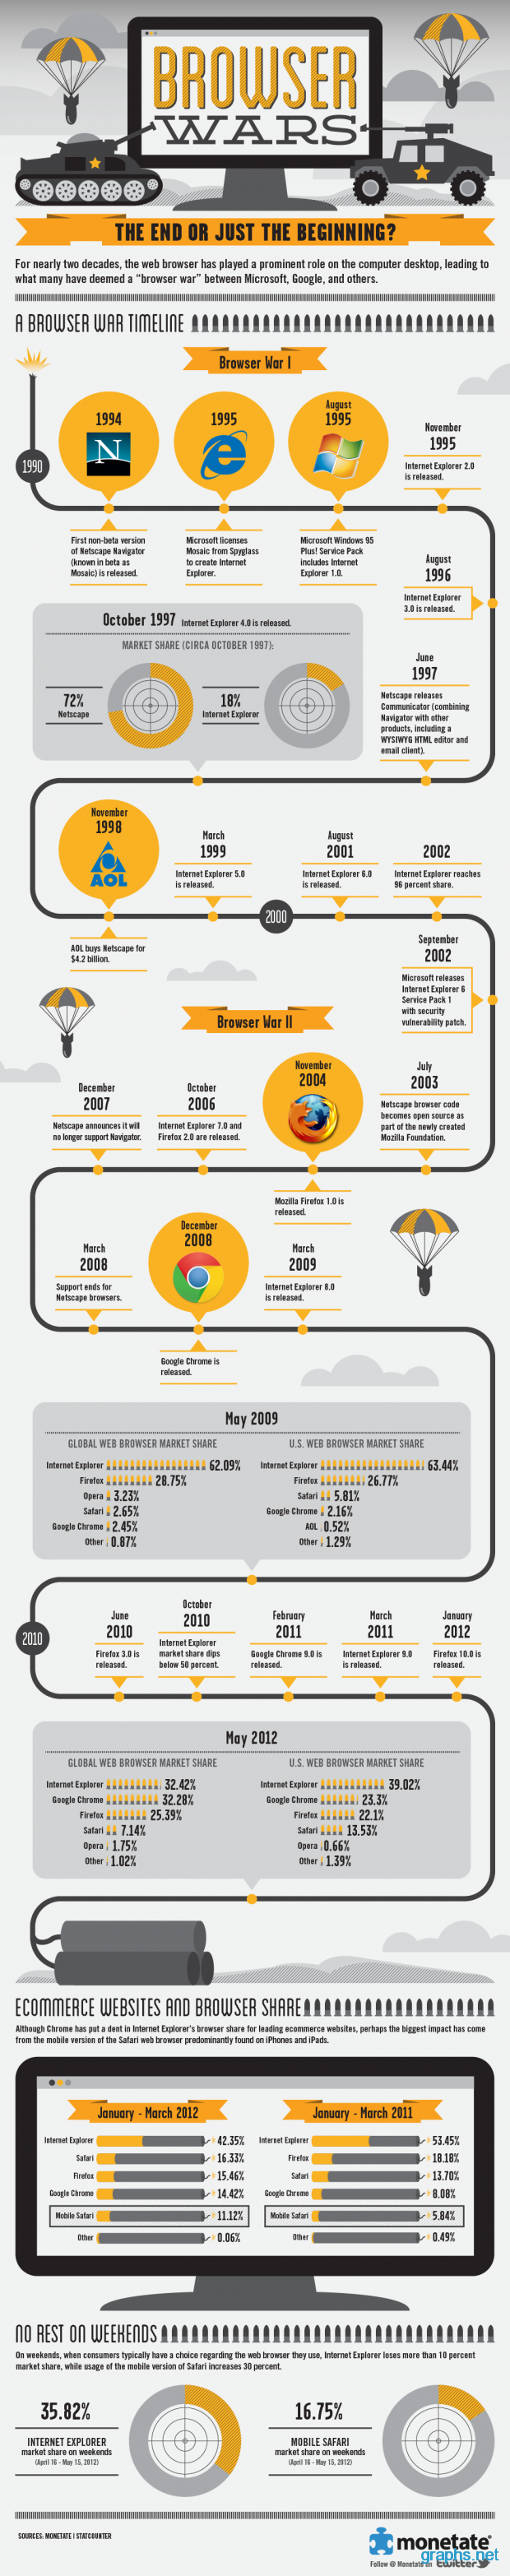 browser war statistics